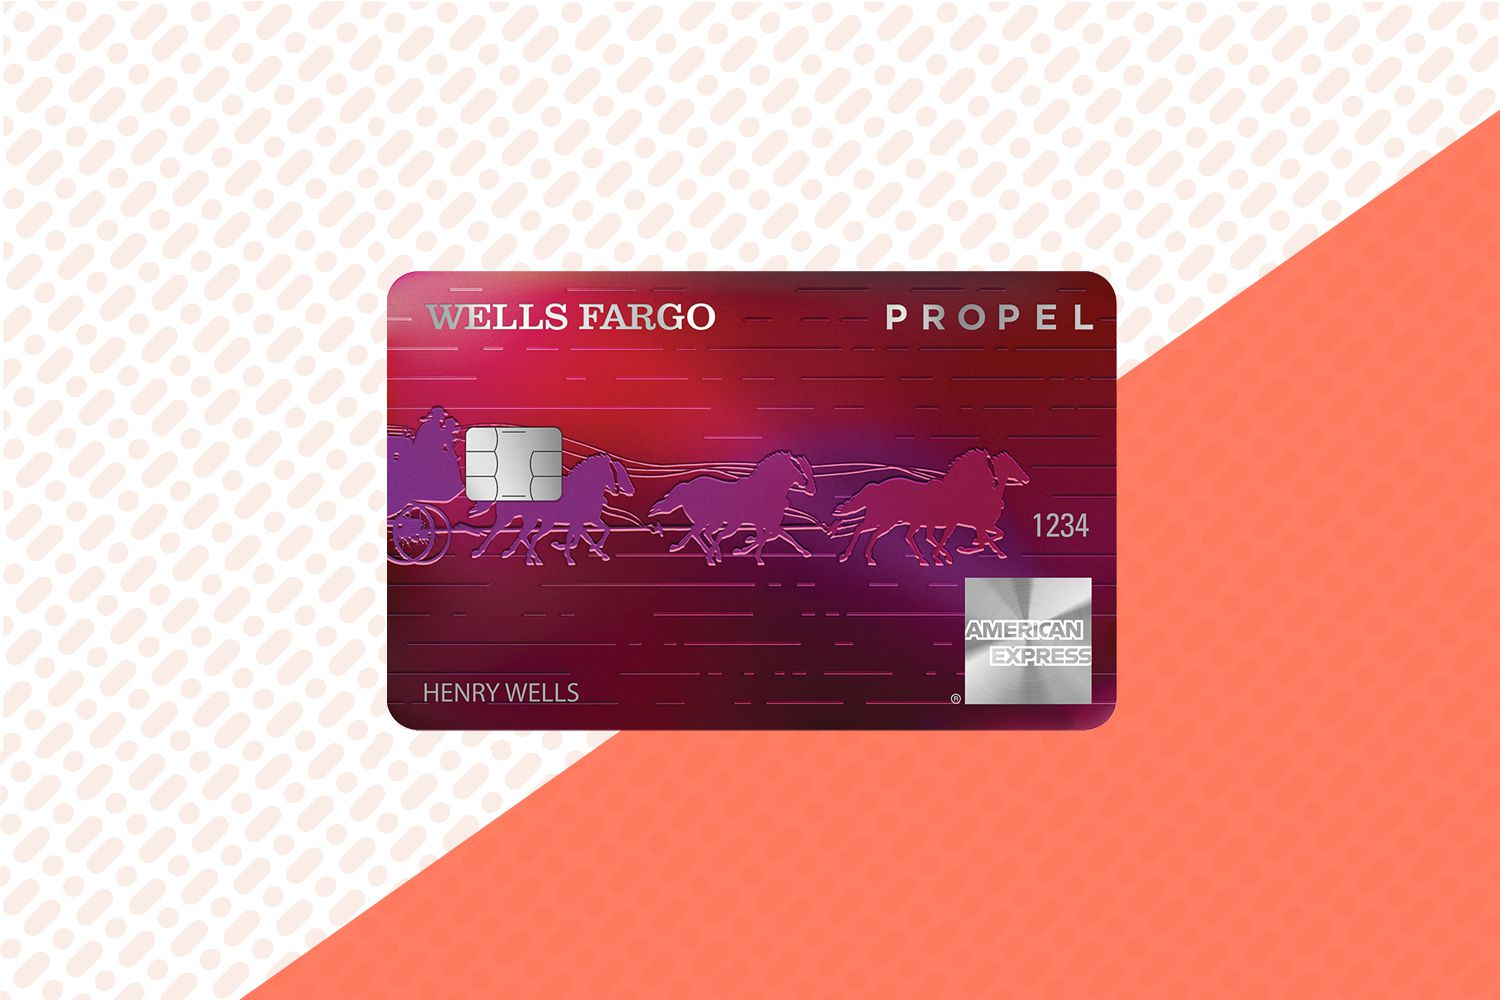 Wells Fargo Propel American Express Card Review: Easy